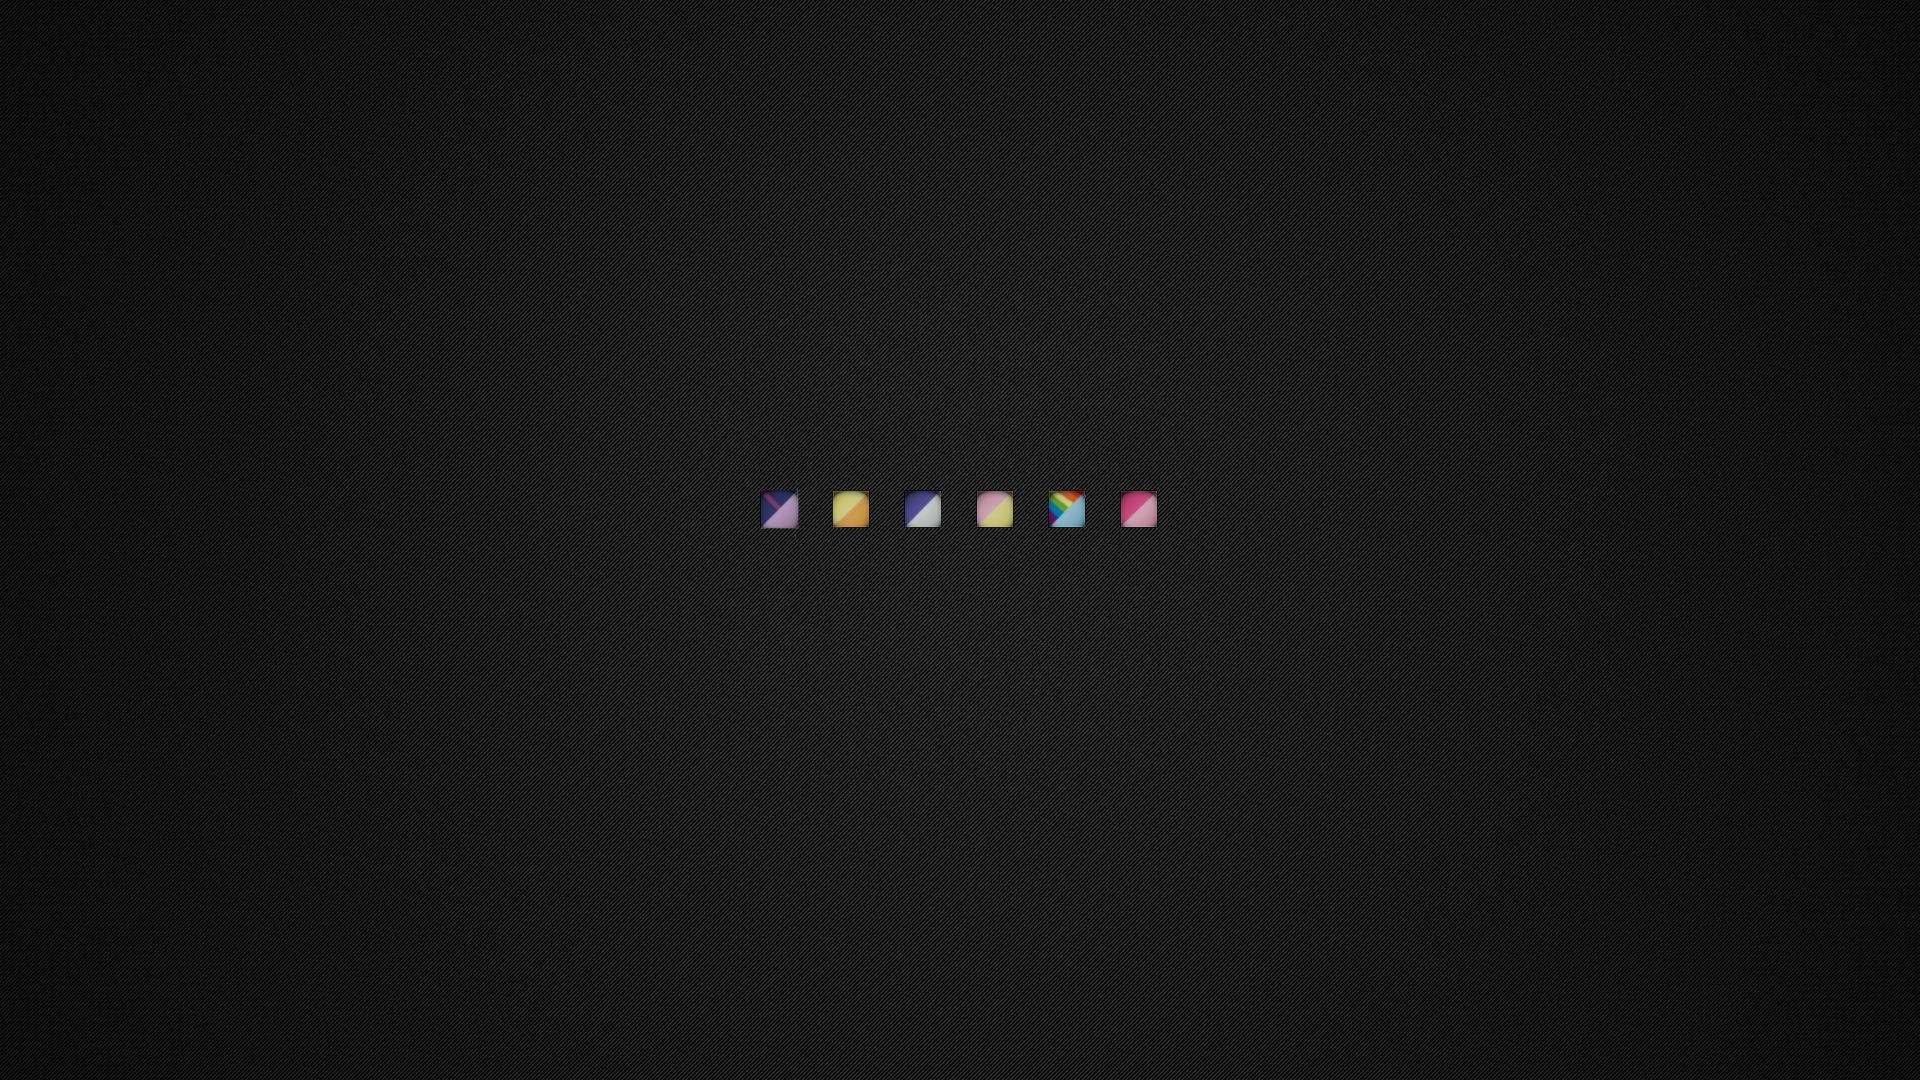 50 Minimalist Wallpaper 1920x1080 On Wallpapersafari